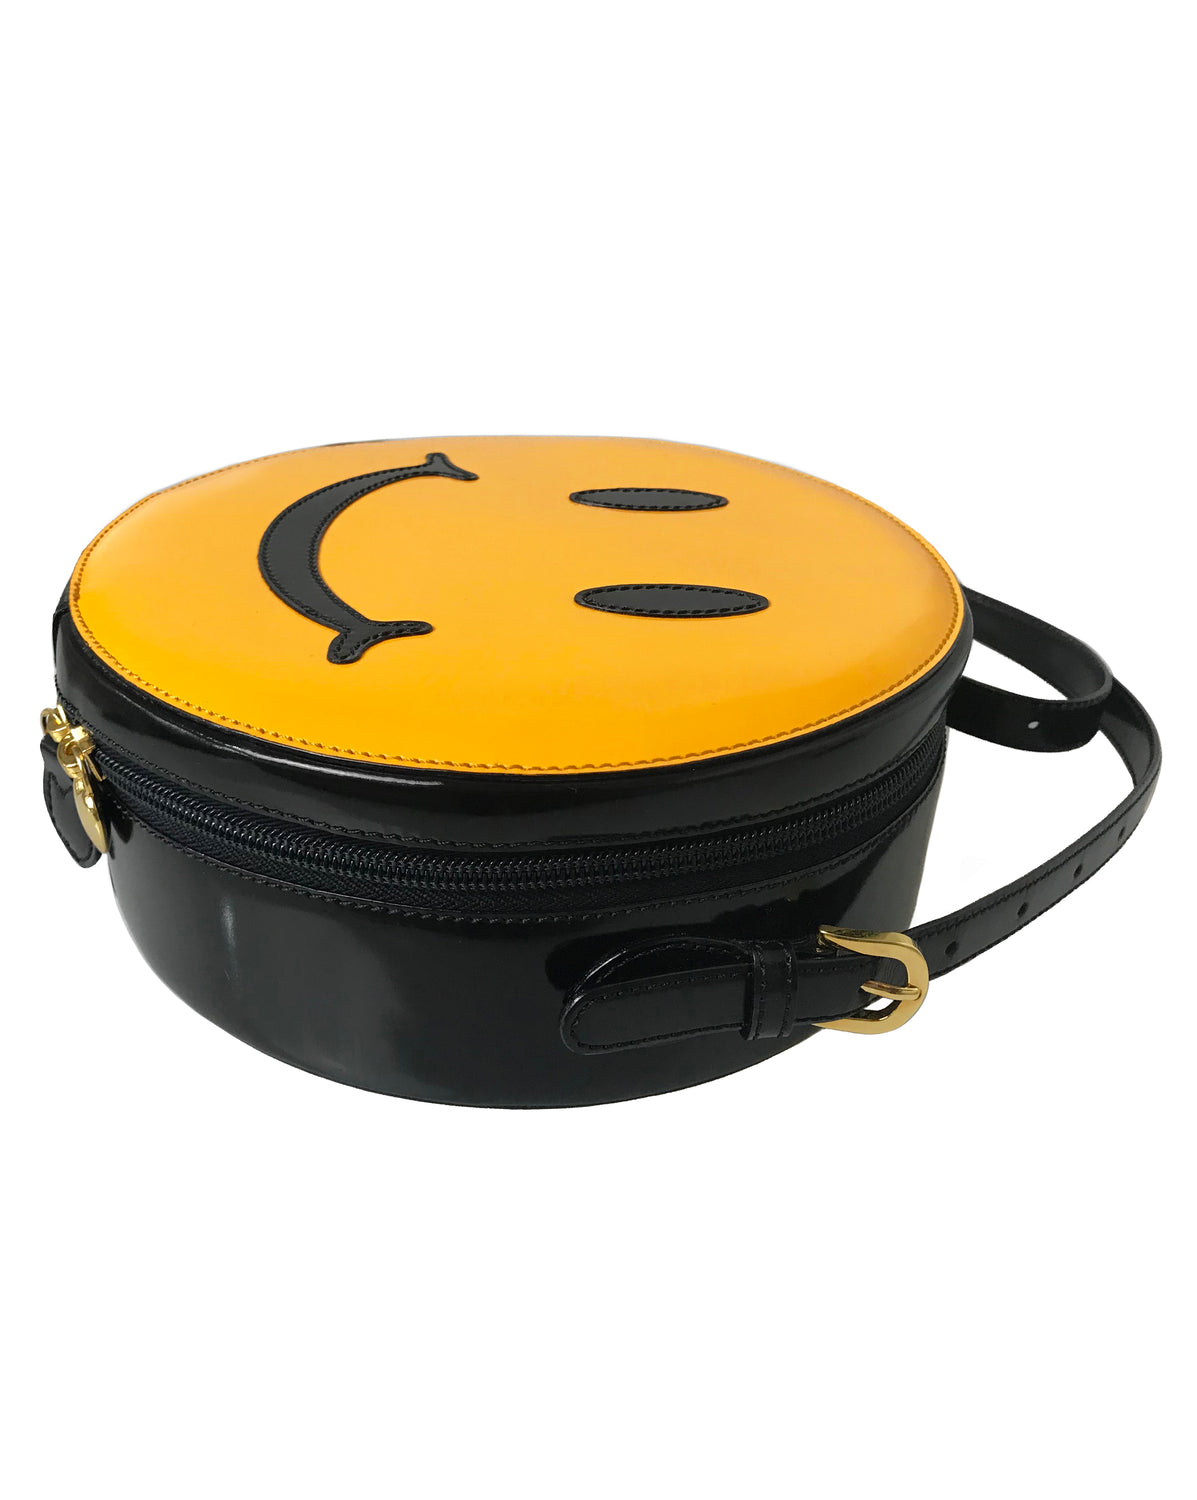 Fruit Vintage Moschino Smiley Face Cross Body bag